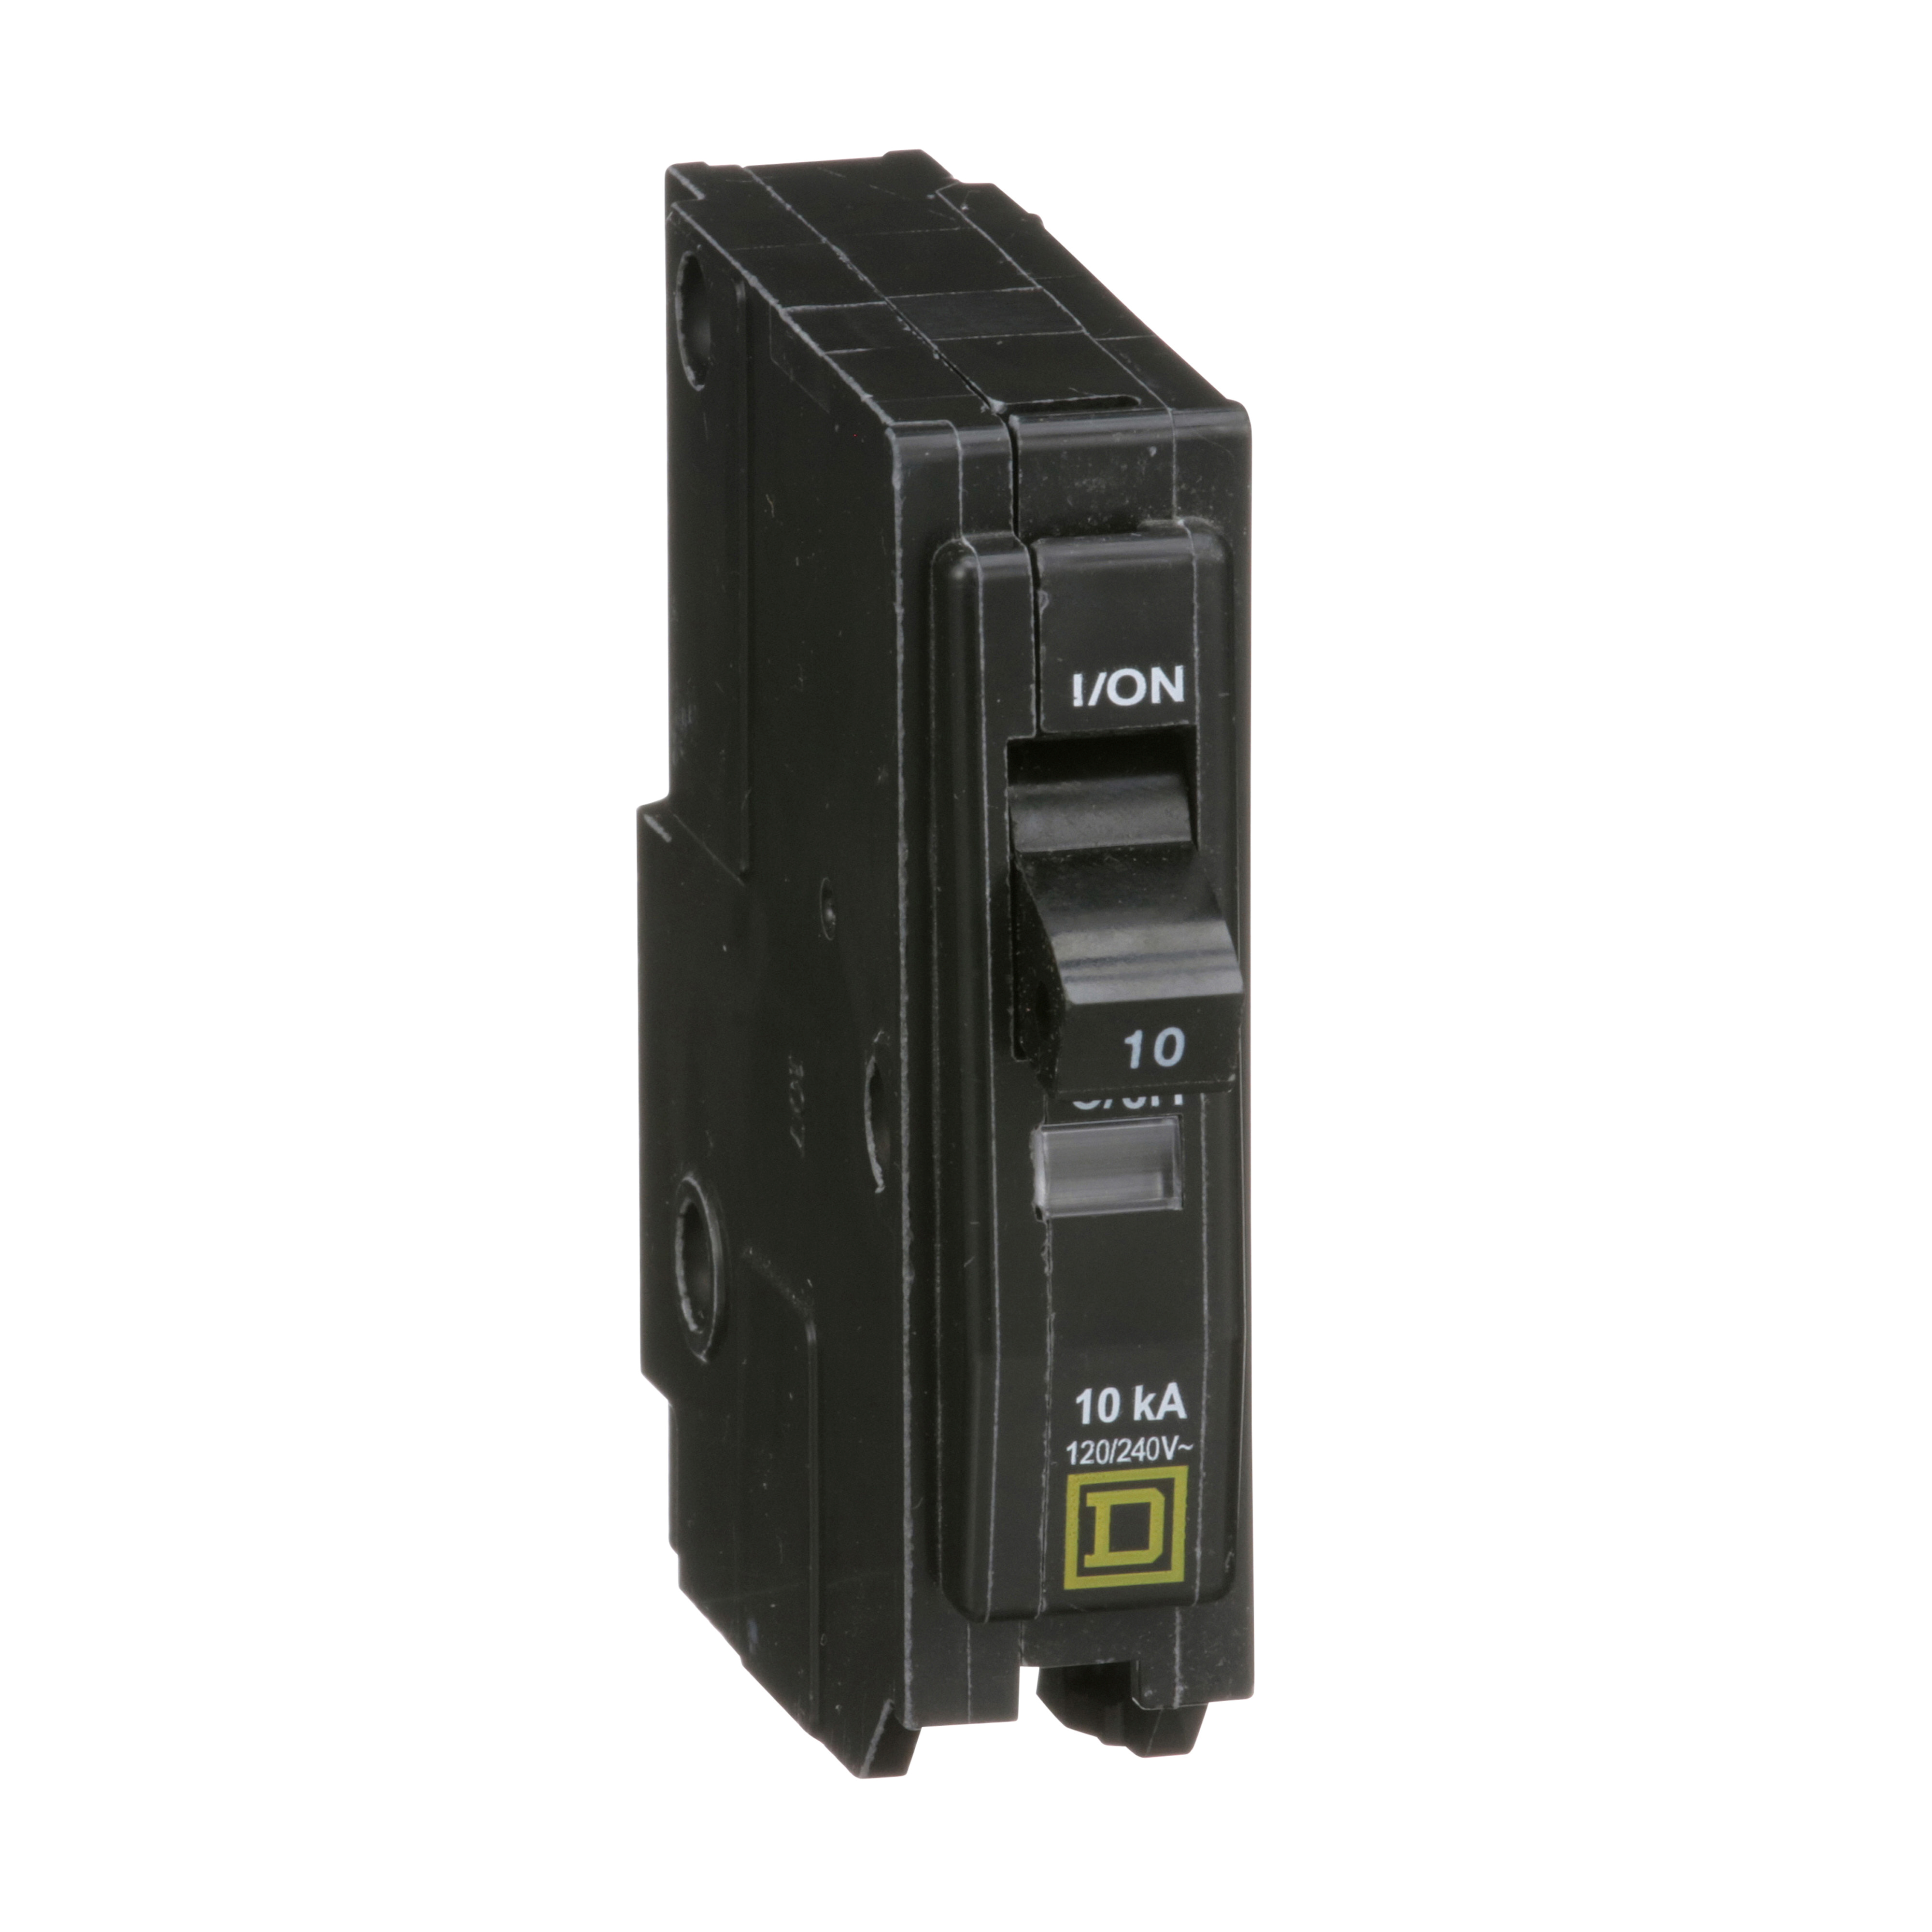 SQUARE D QO110 : MINIATURE CIRCUIT BREAKER 120/240V 10A